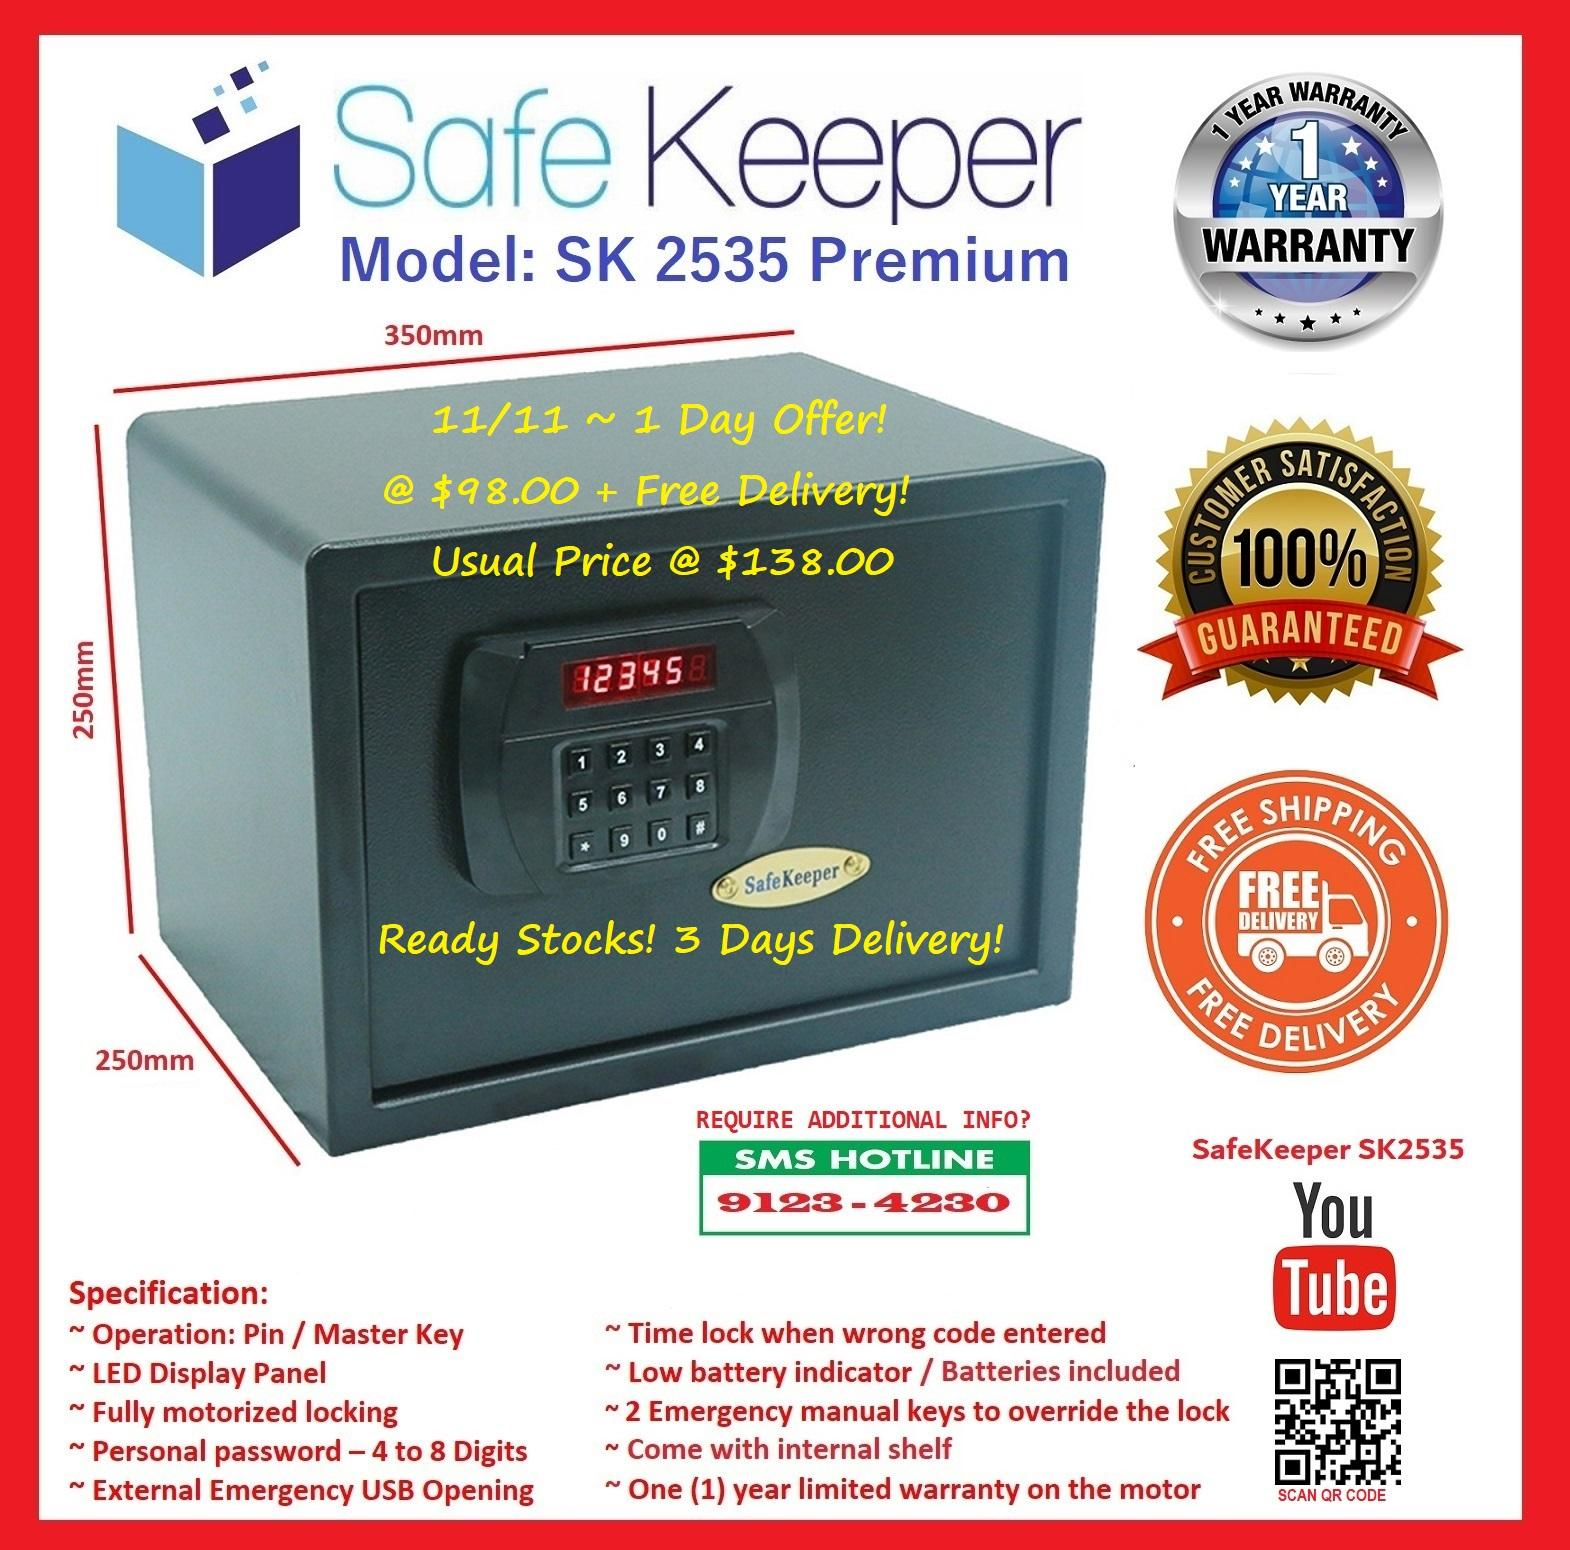 SafeKeeper SK2535 Medium Safe ( 100% New Product!) (Usual Price @ $138.00) But Now!!!!Promotion @ $108.00 ( Save $40) ( Color: Black ) (3~5 Working Days) (100% Brand New Product)